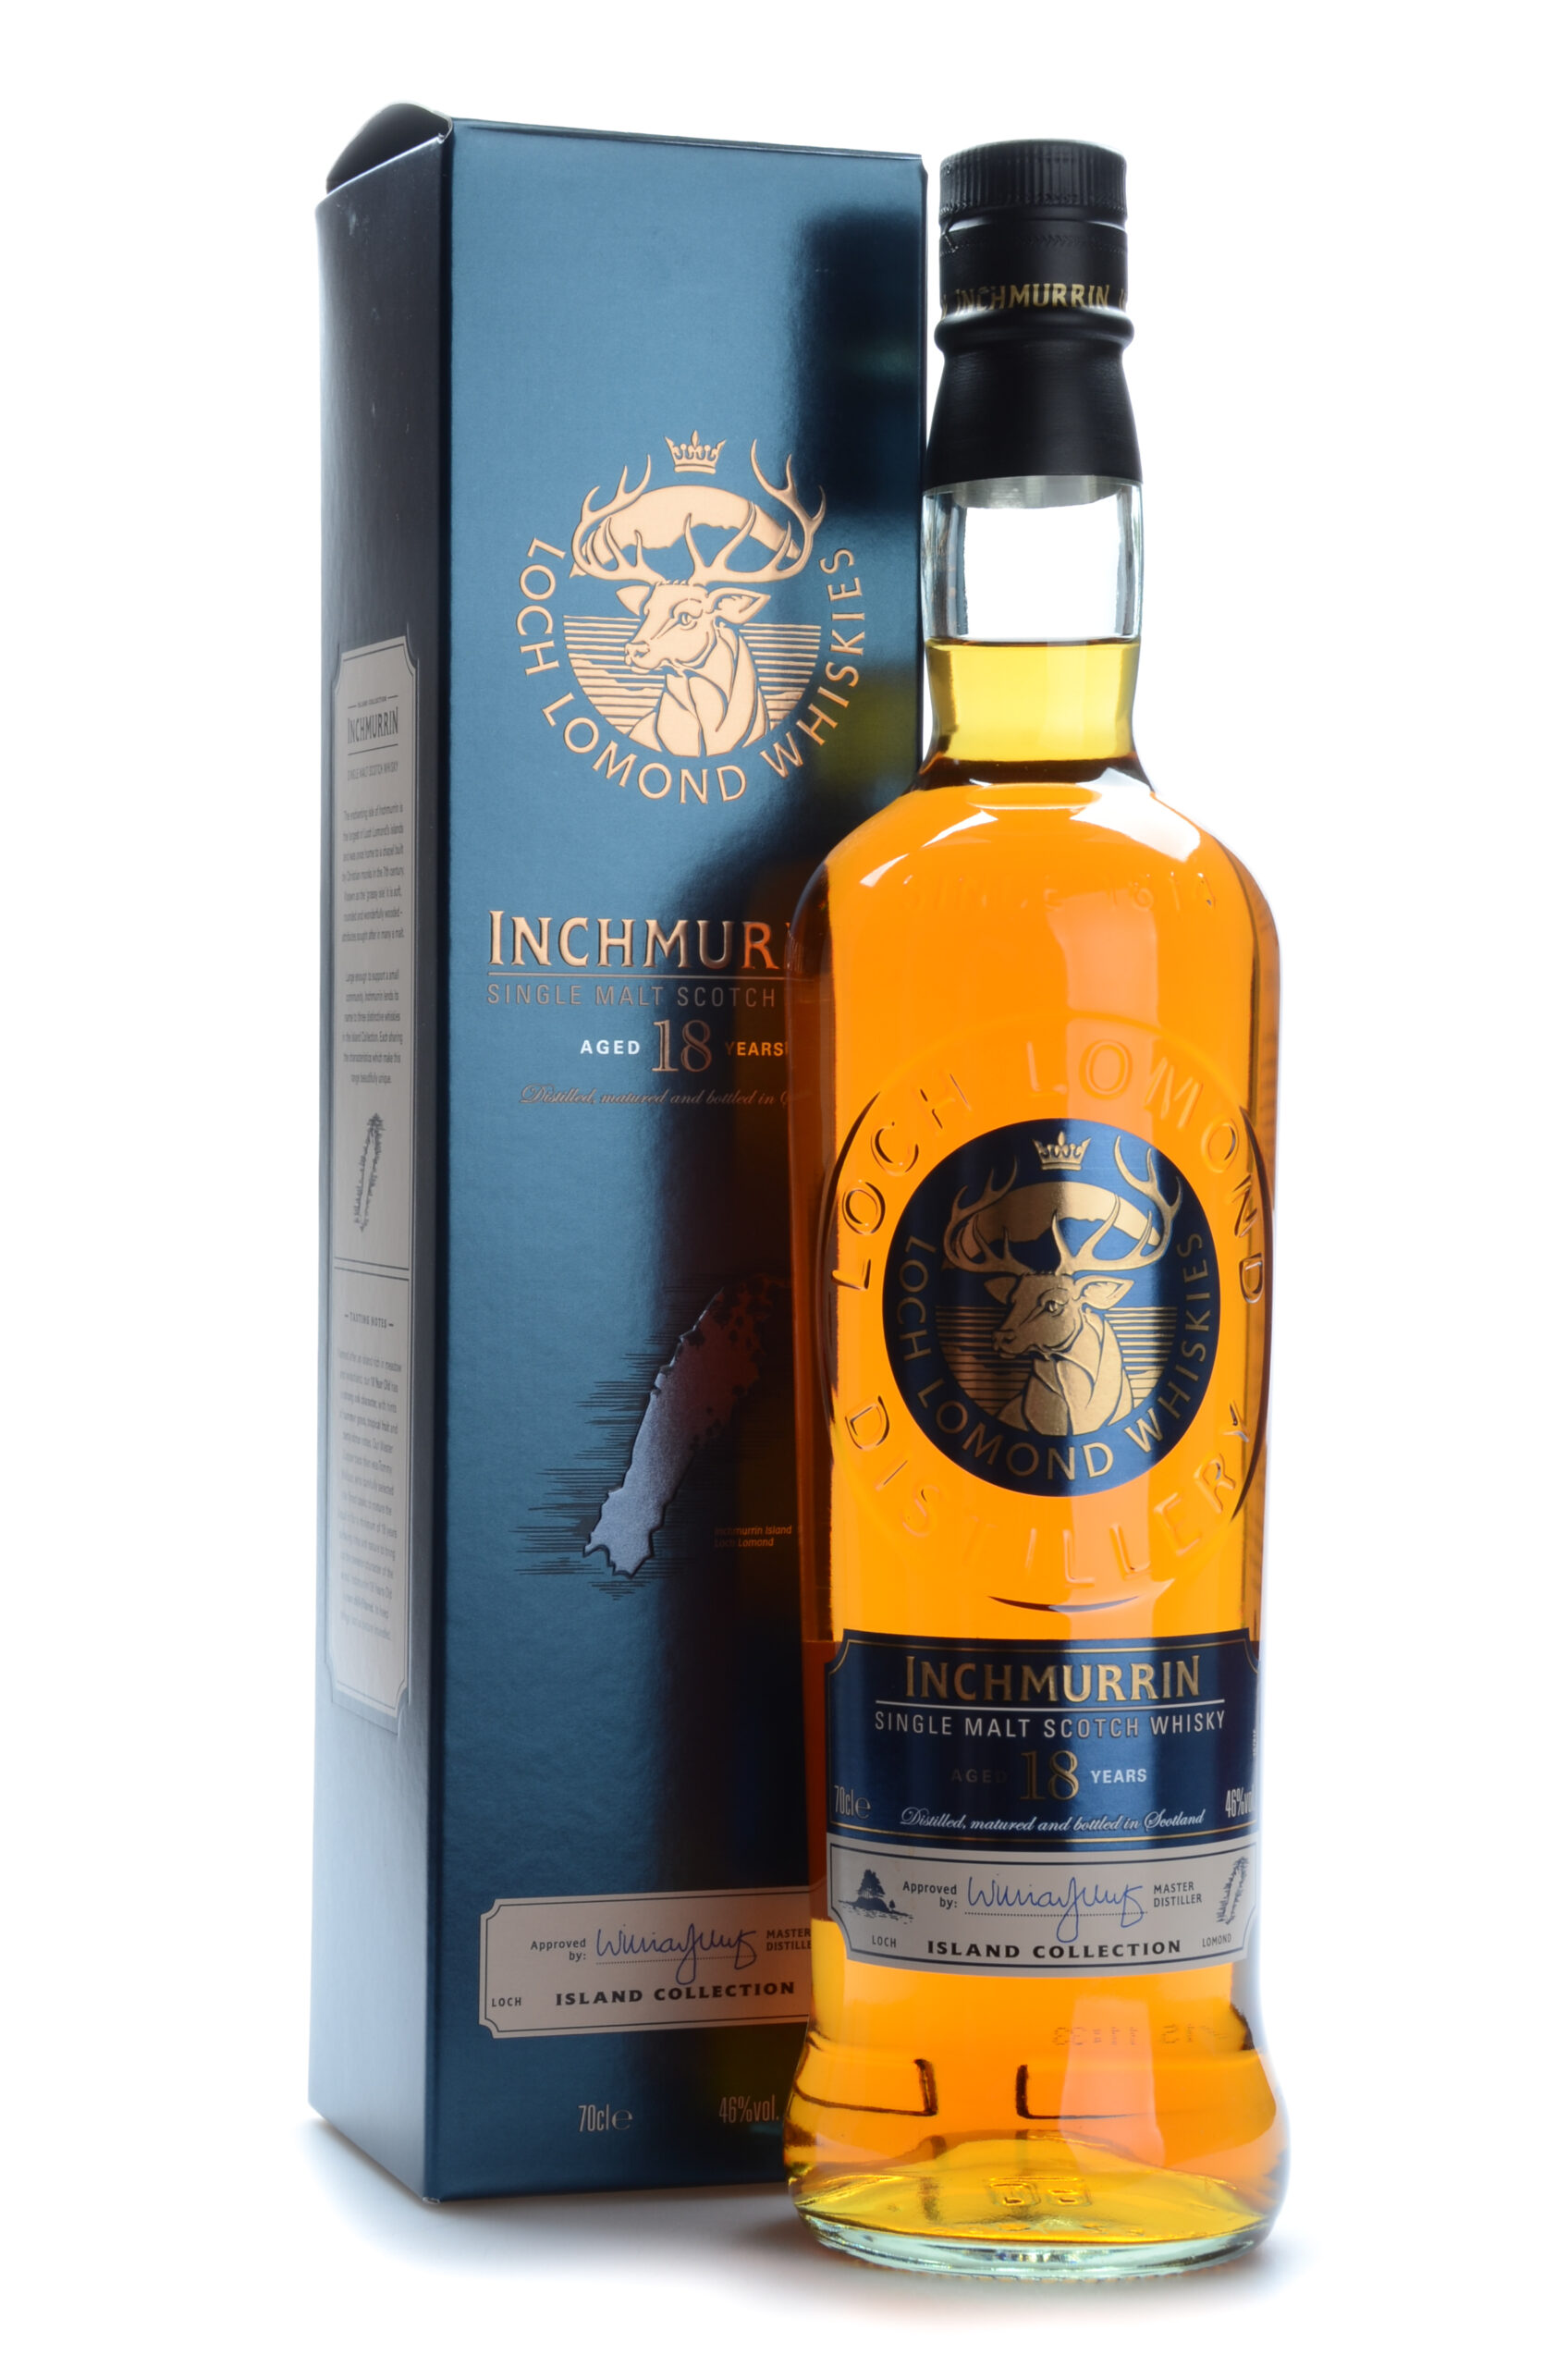 Loch Lomond Inchmurrin 18 years